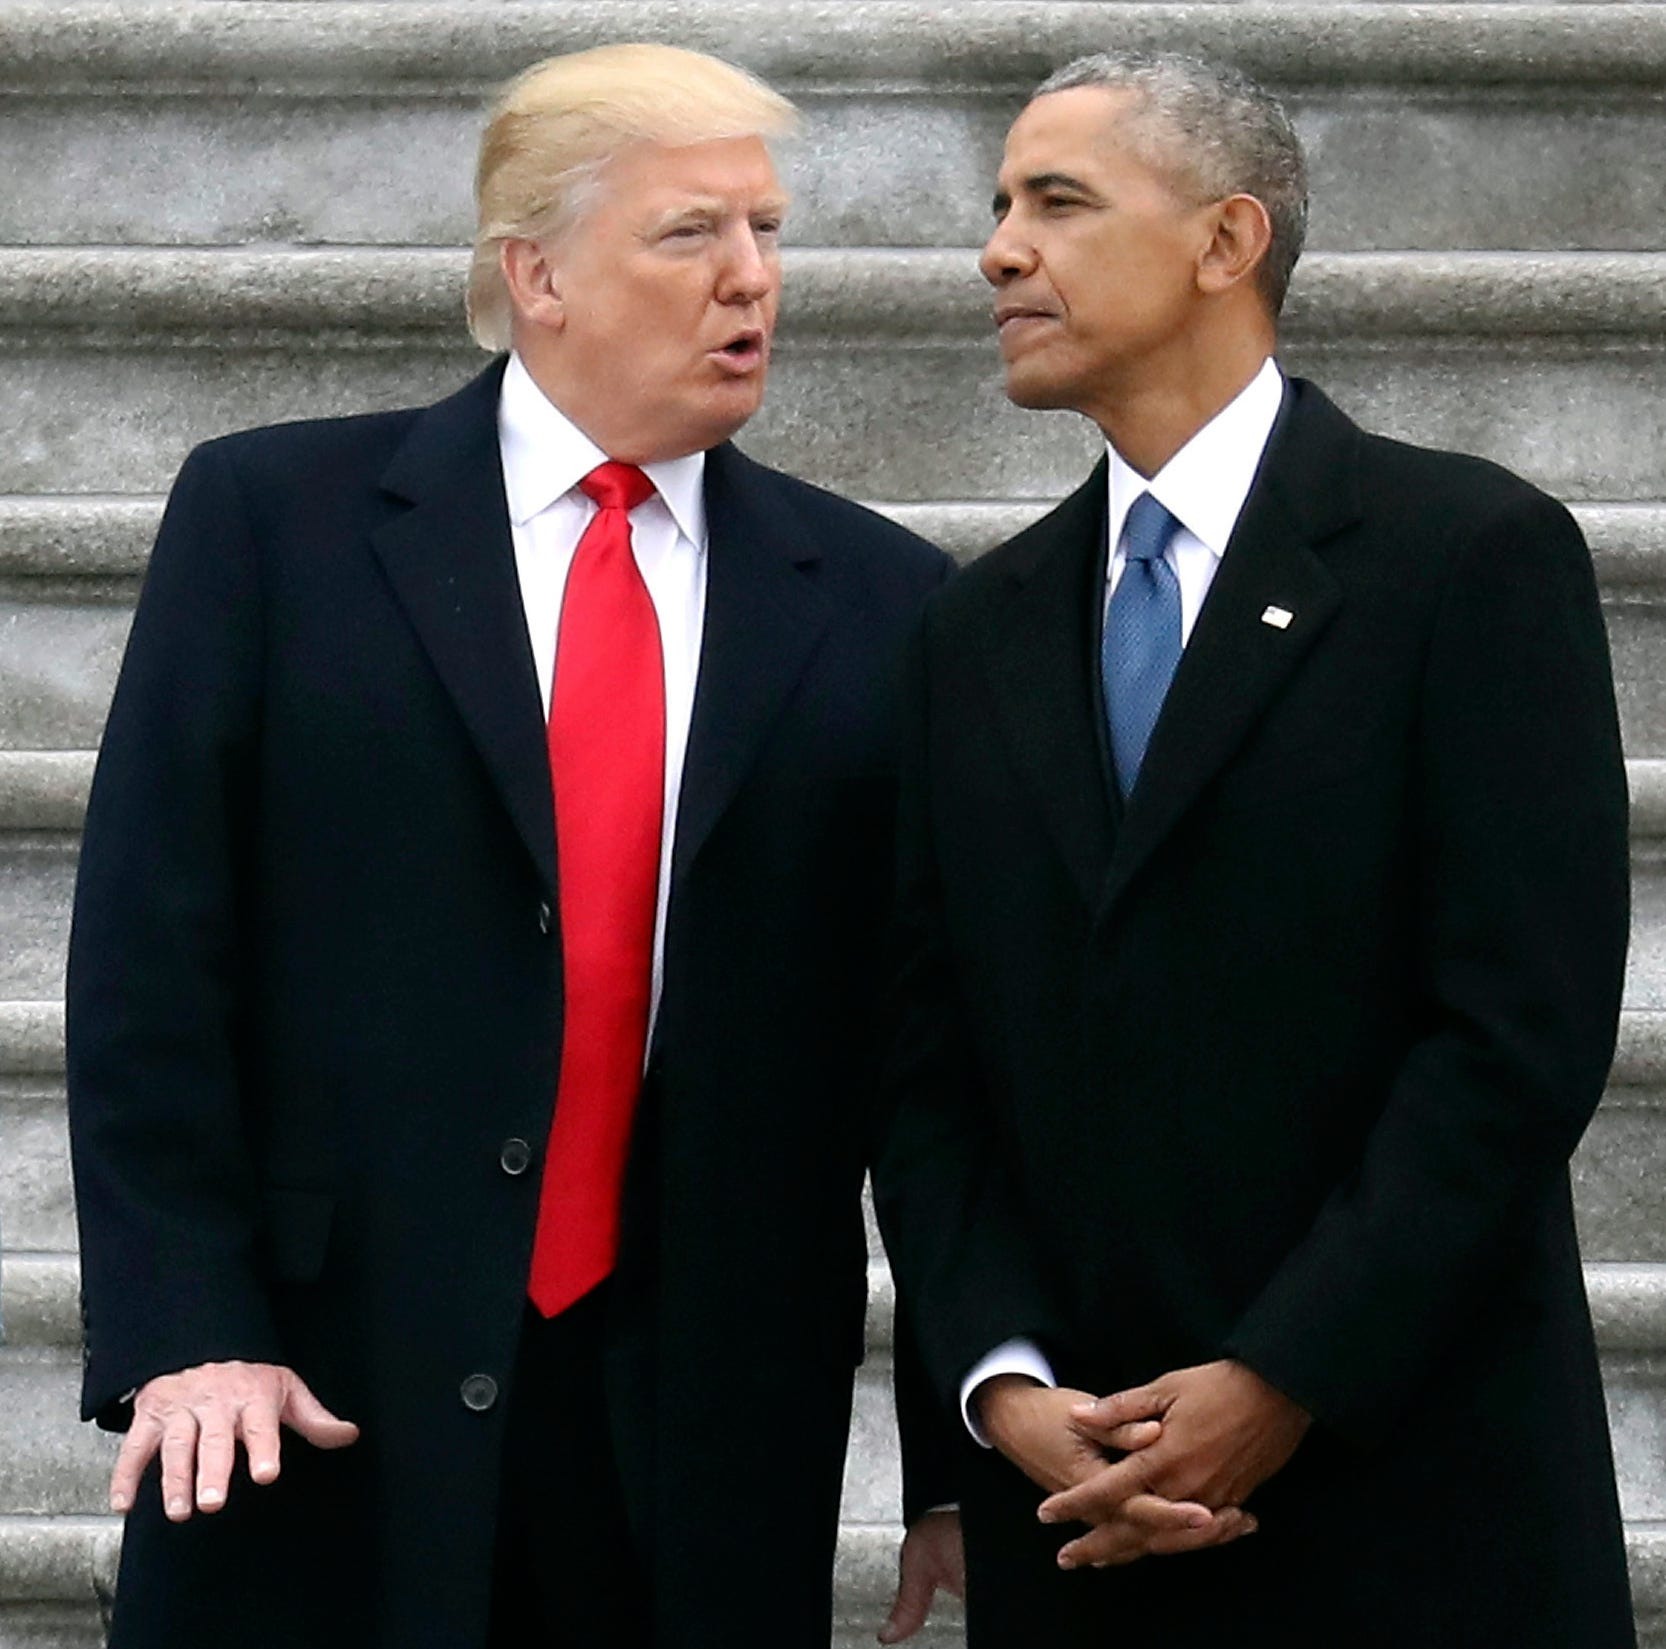 Who's really to thank for booming economy: Donald Trump or Barack Obama?